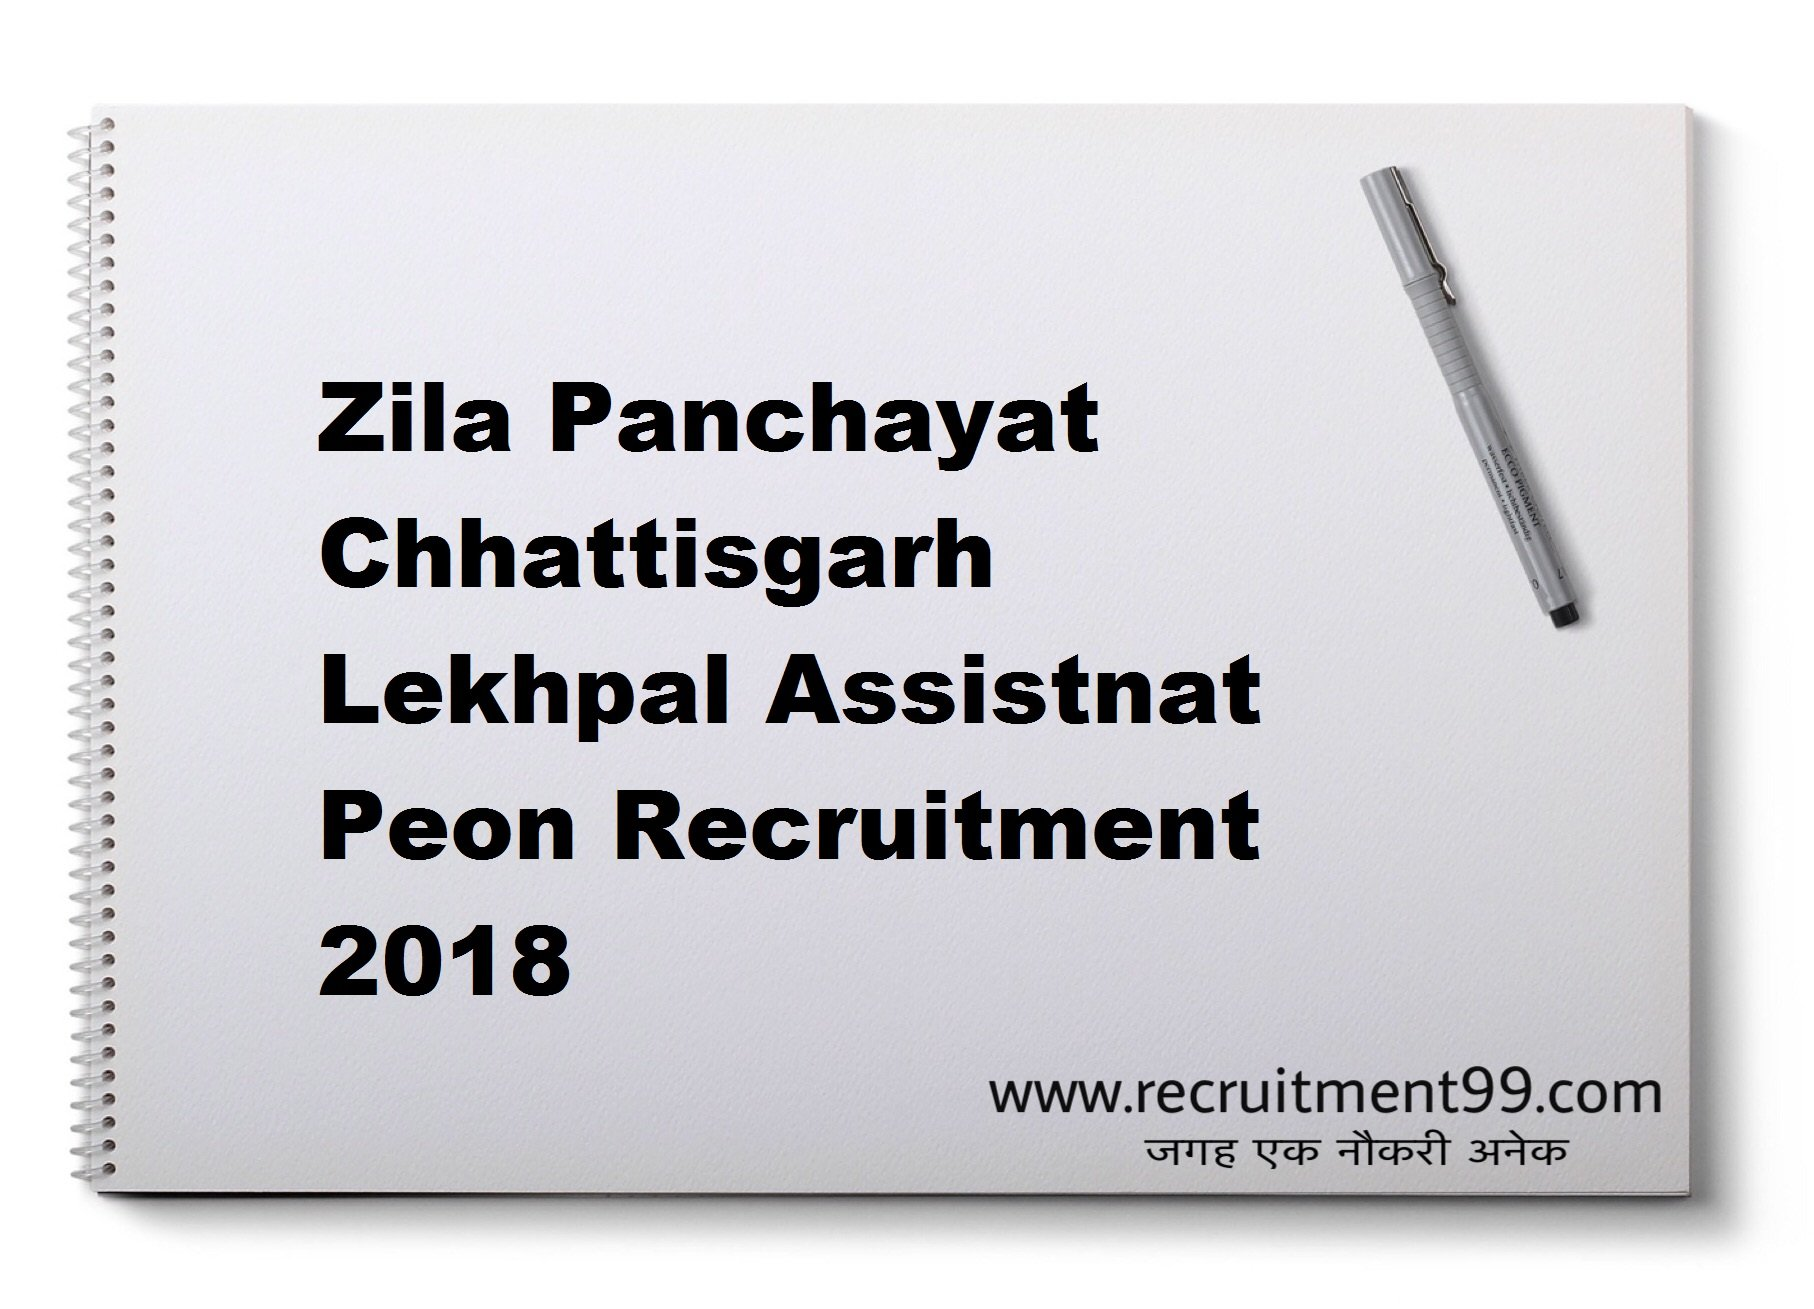 Zila Panchayat Chhattisgarh Lekhpal Assistnat Peon Recruitment Admit Card Result 2018